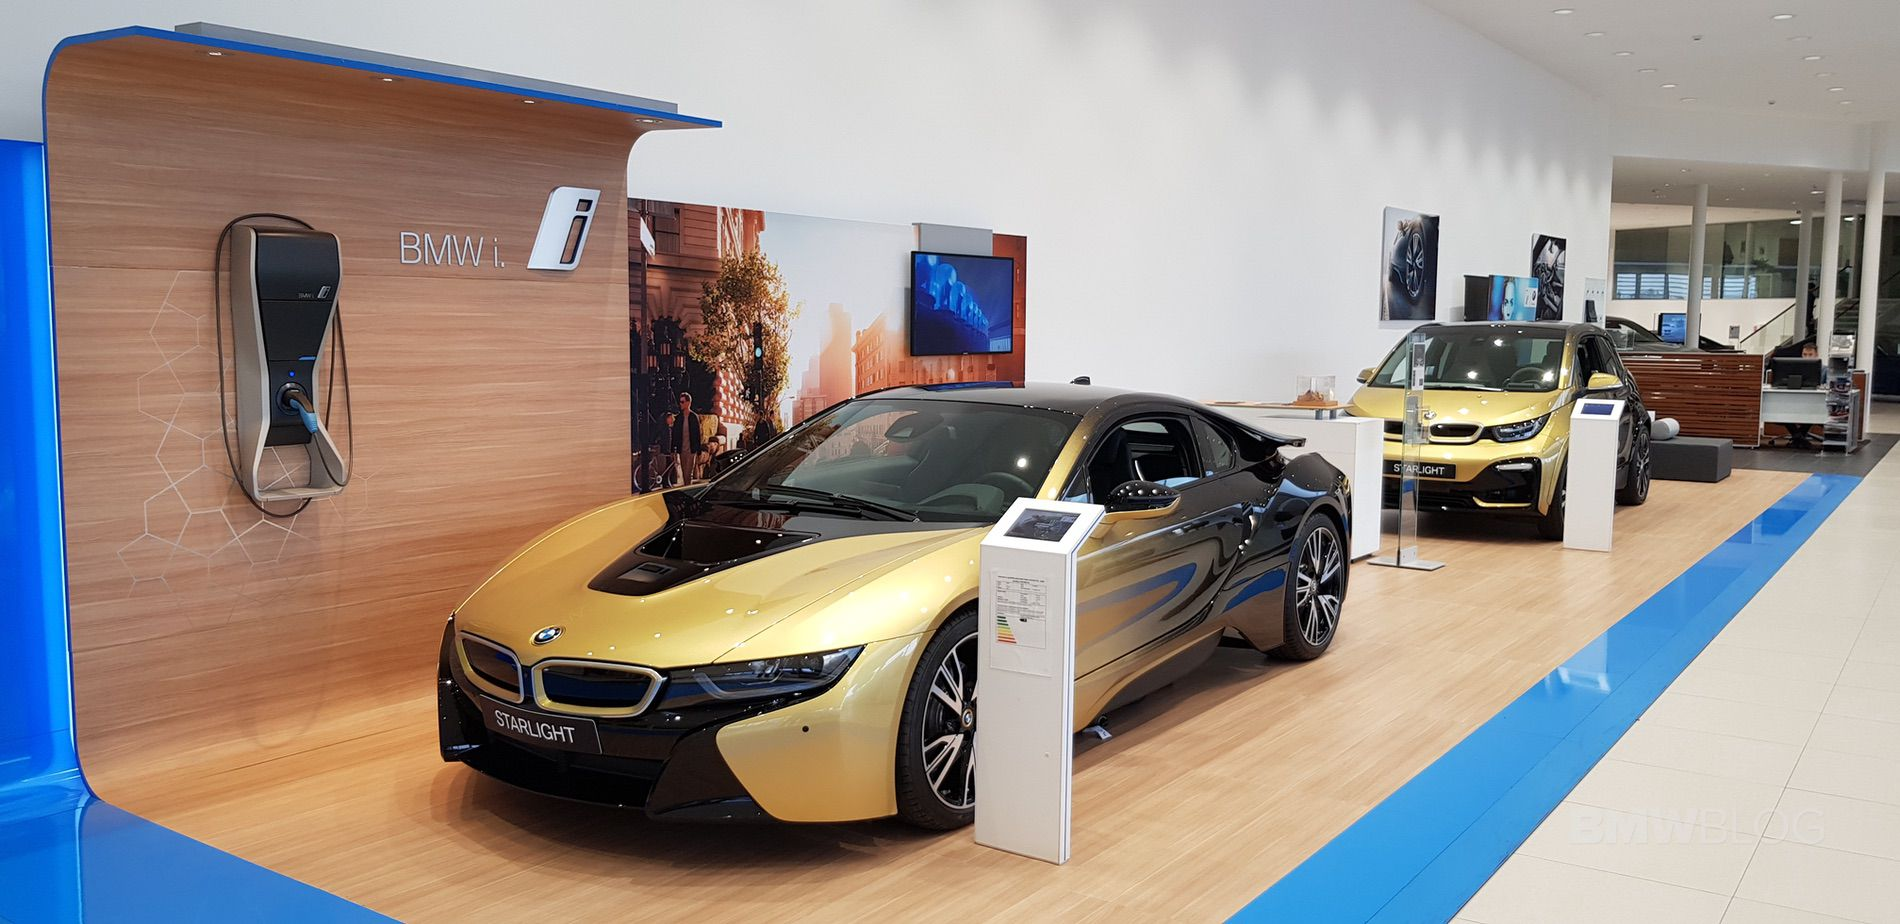 Bmw I3 And I8 Starlight Edition Now Up For Auction Website Of